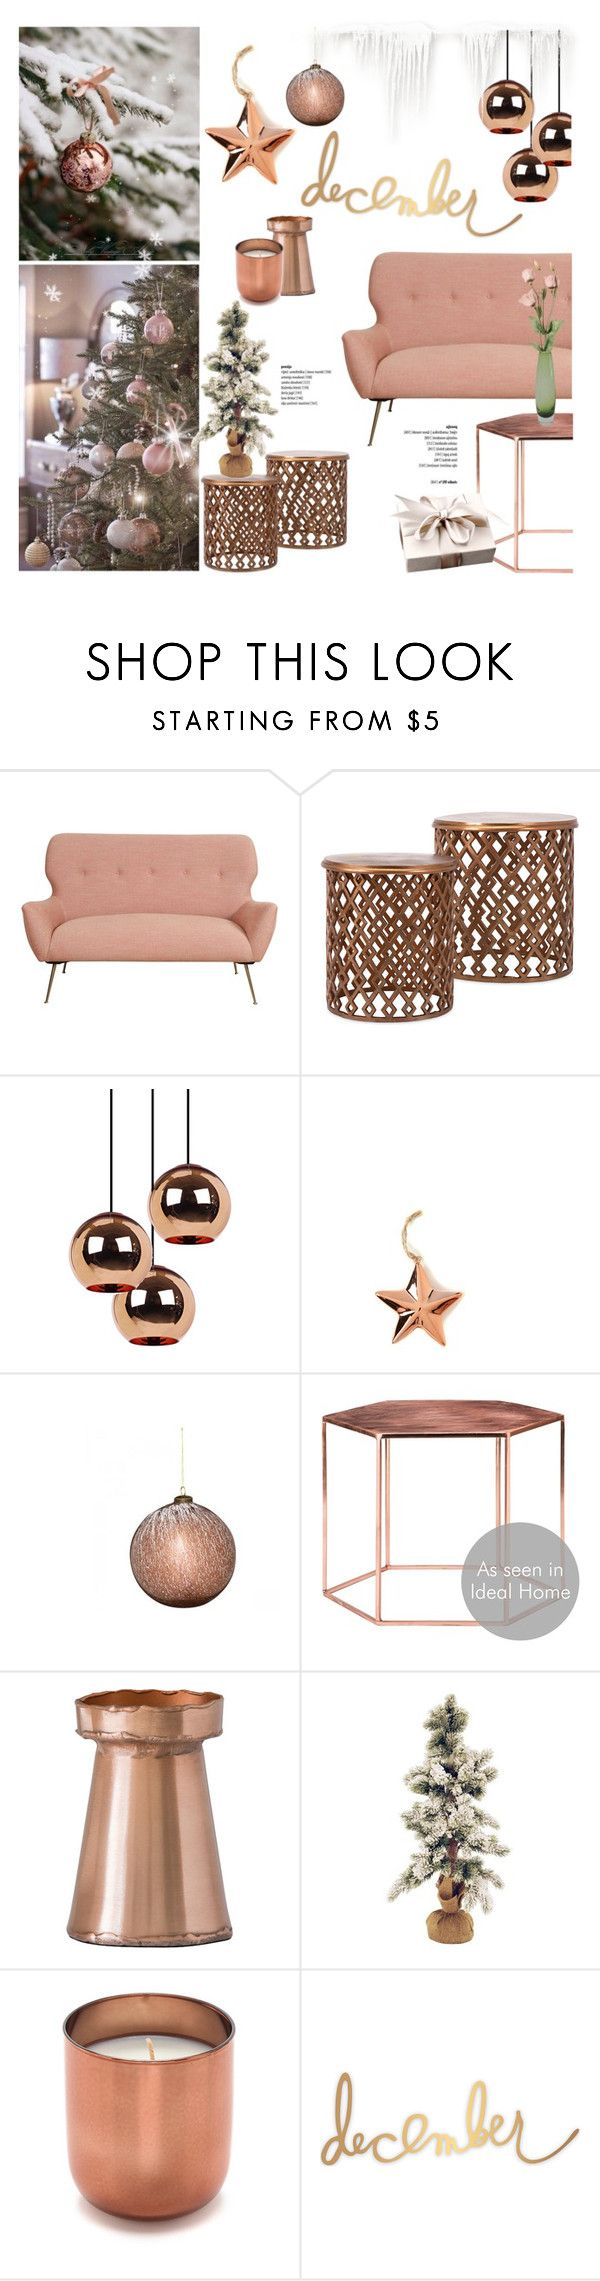 """Copper mood 4/December Decor"" by helenevlacho on Polyvore featuring interior, interiors, interior design, home, home decor, interior decorating, Tom Dixon, Bloomingville, Winward and Jonathan Adler"